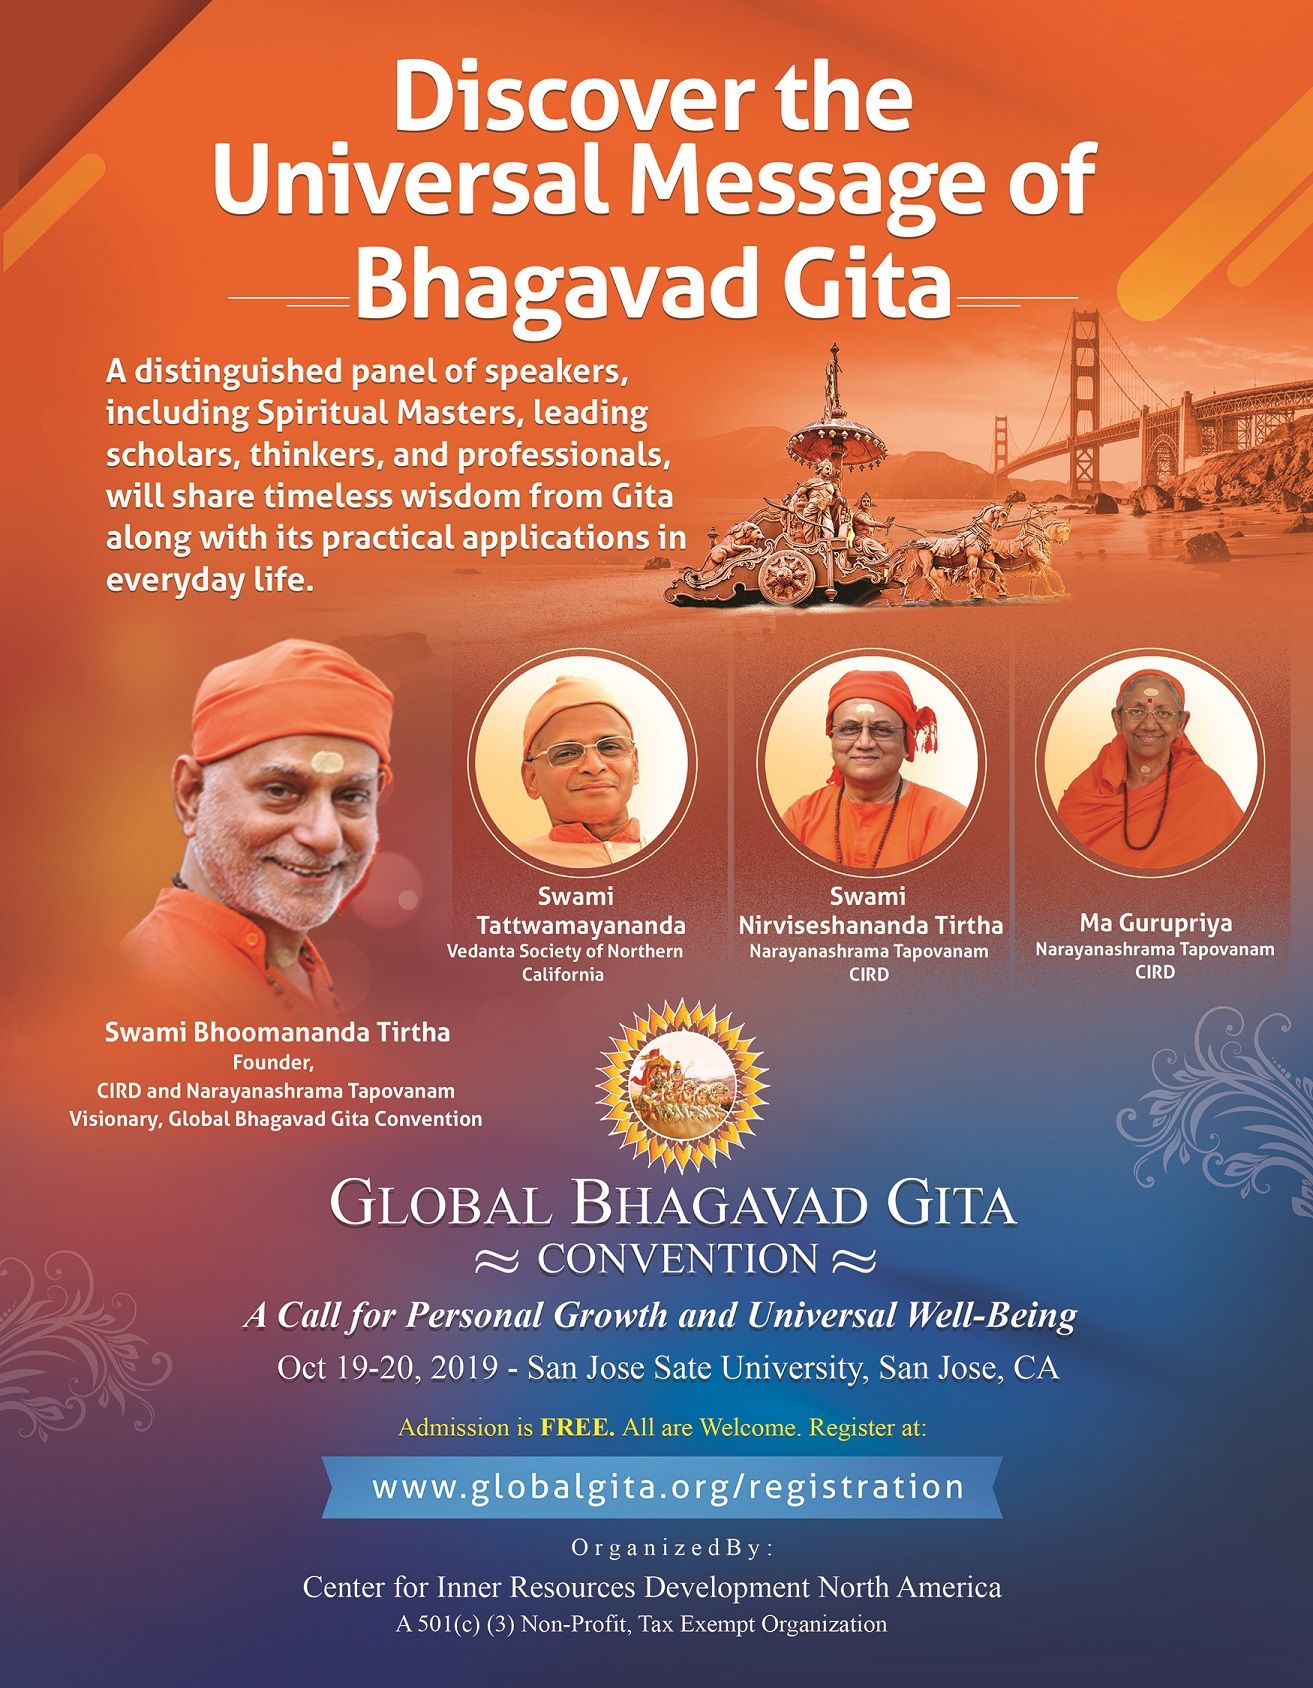 Discover the Universal Message of Bhagavad Gita